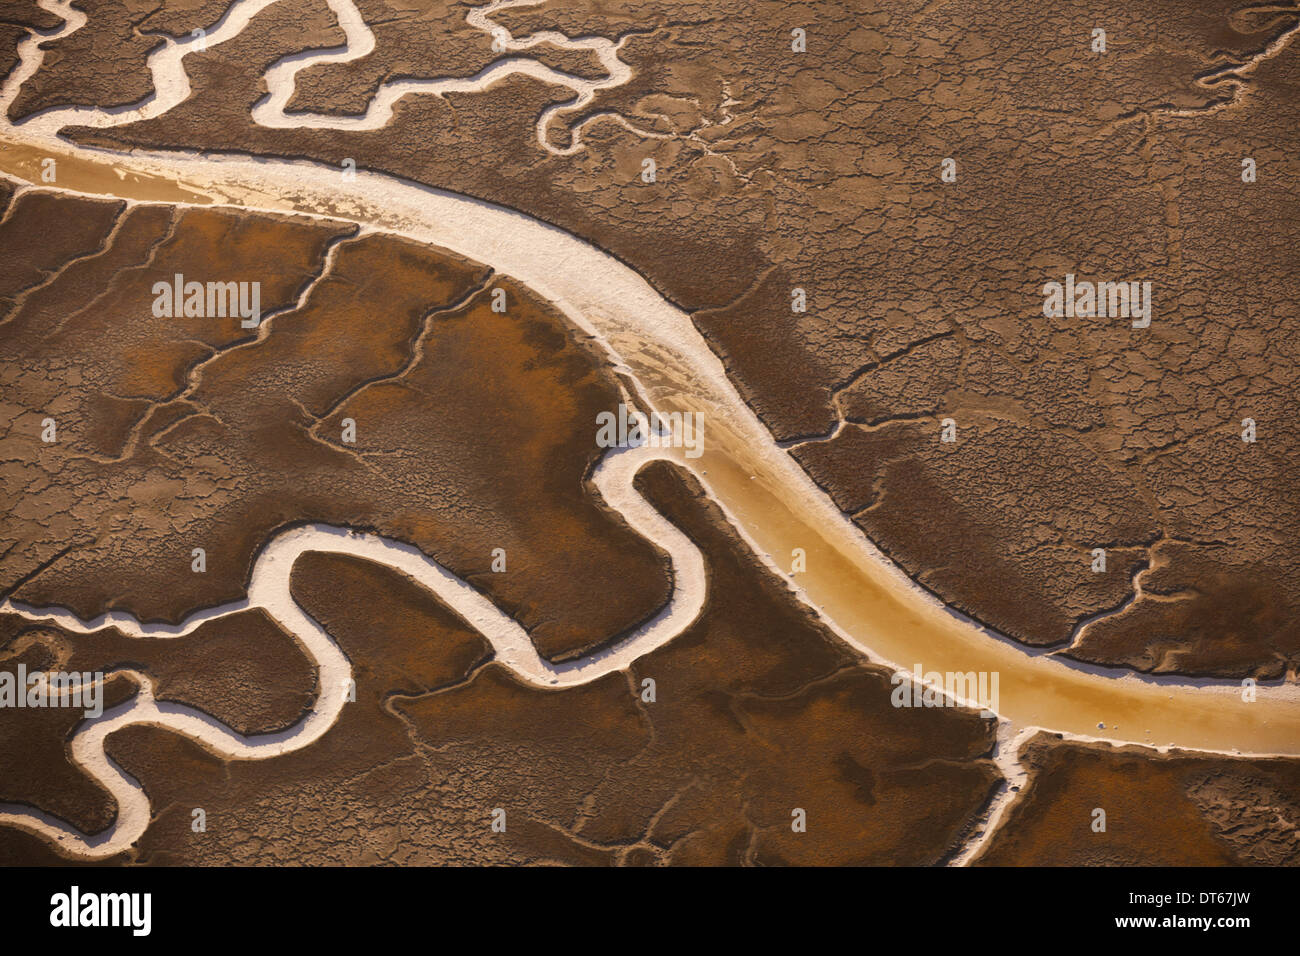 San Francisco Bay salt flats with glistening water channels in California, USA - Stock Image